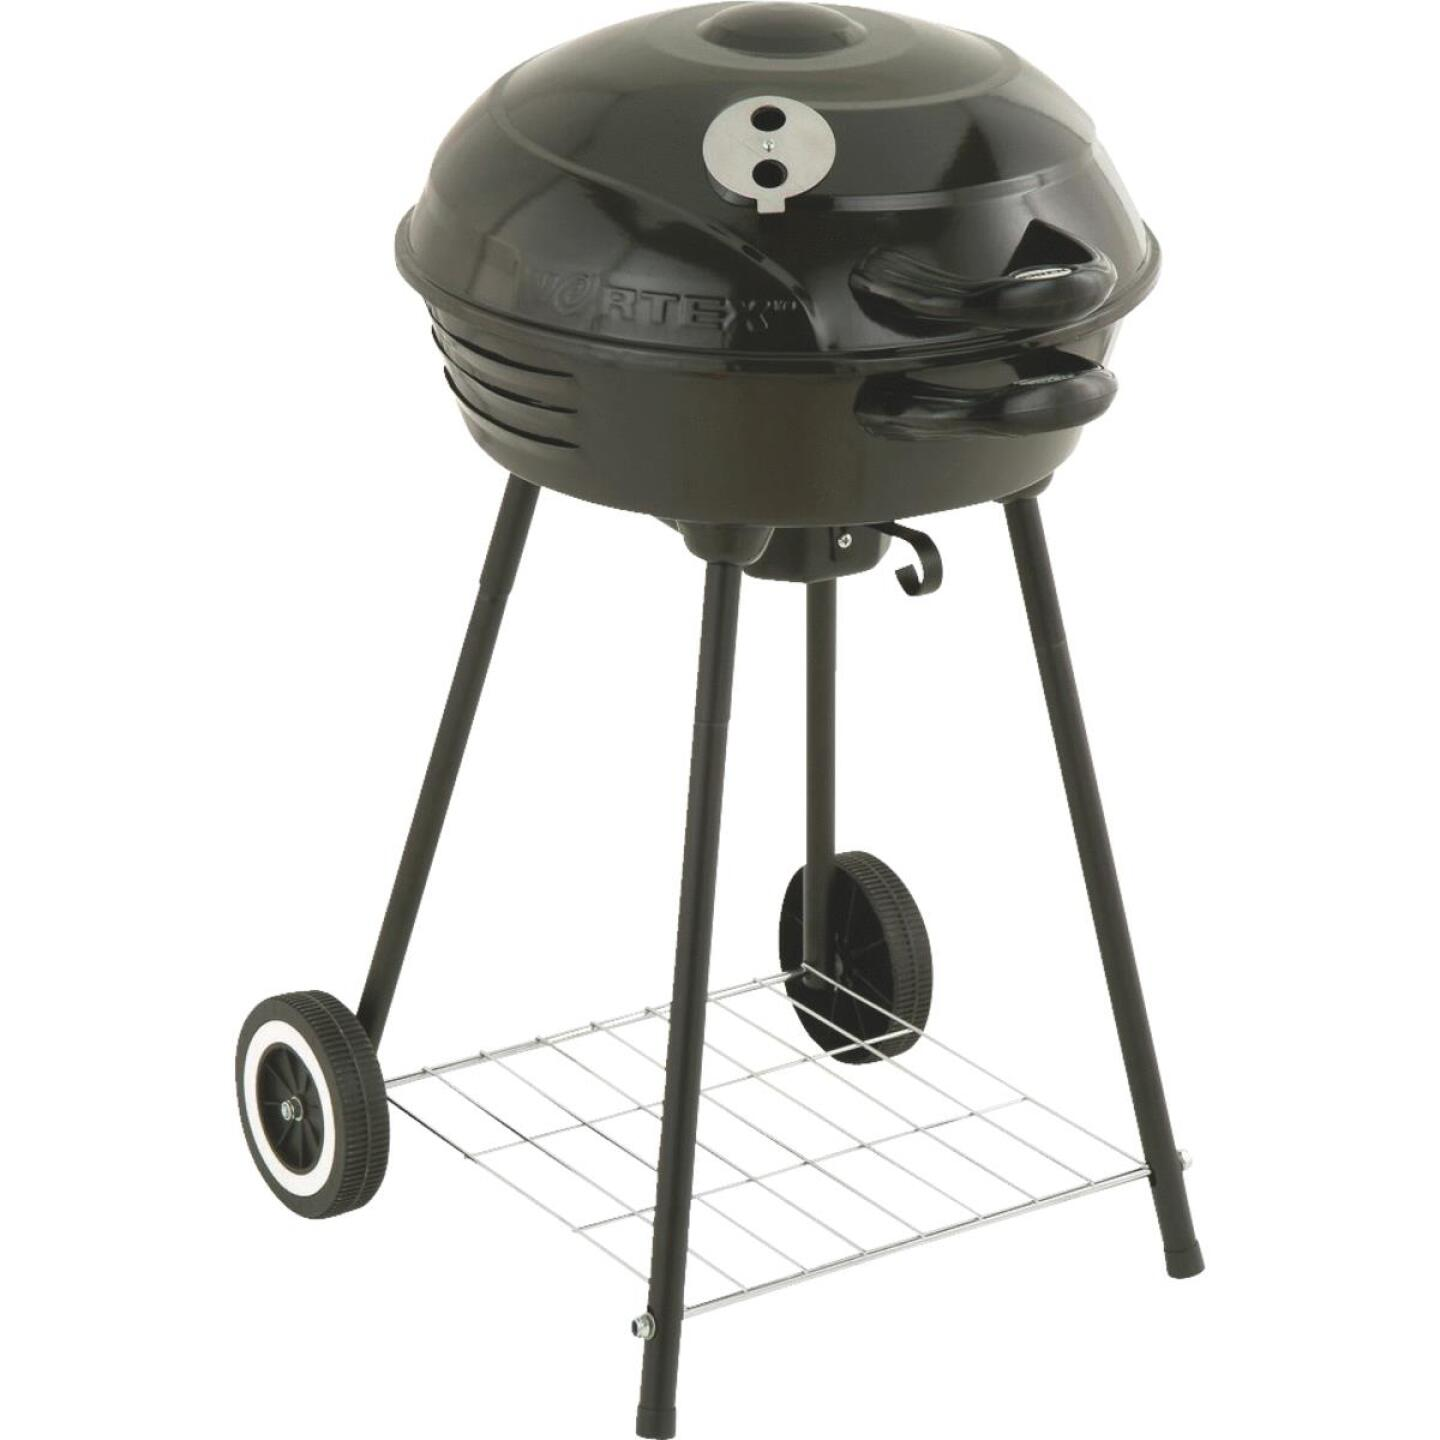 Kay Home Products 18 In. Dia. Black Charcoal Grill Image 1